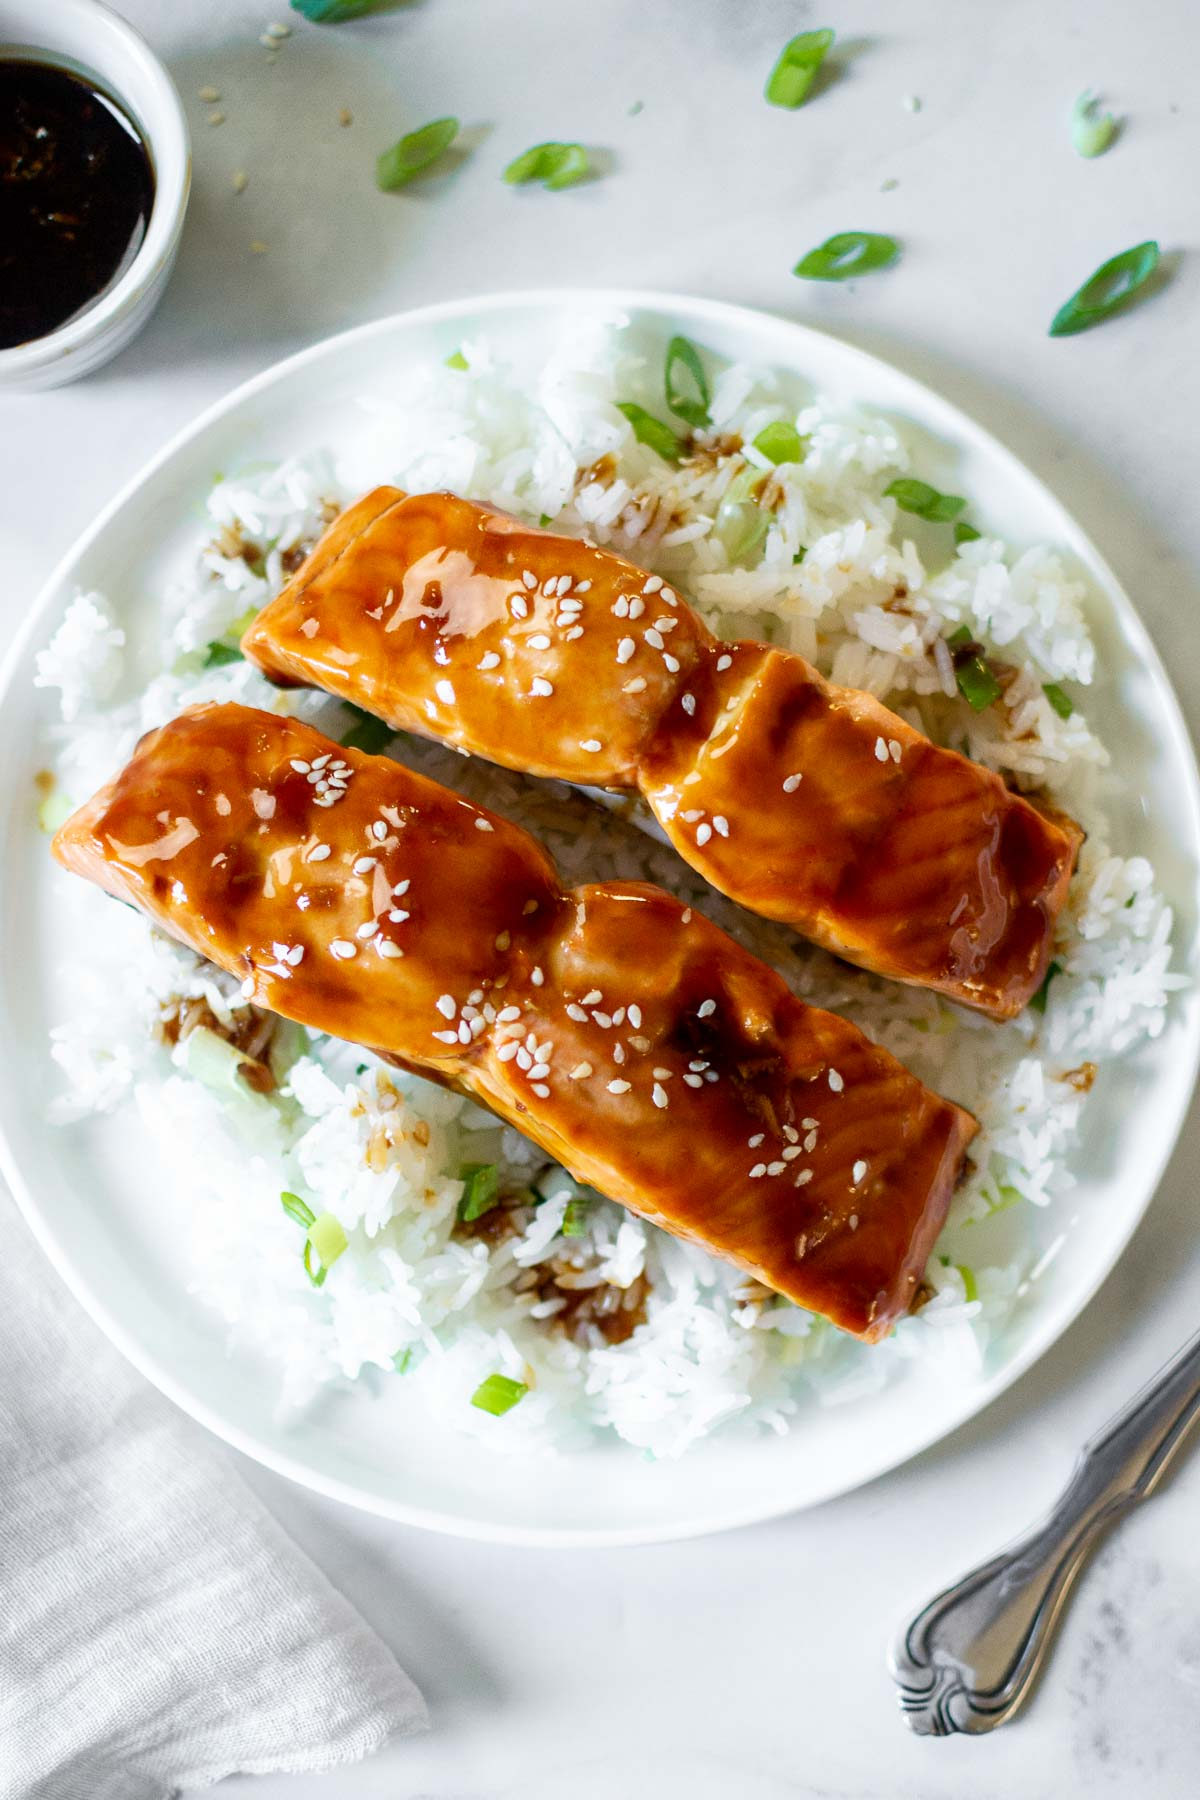 Air Fryer Teriyaki Salmon filets on a bed of rice with scallions